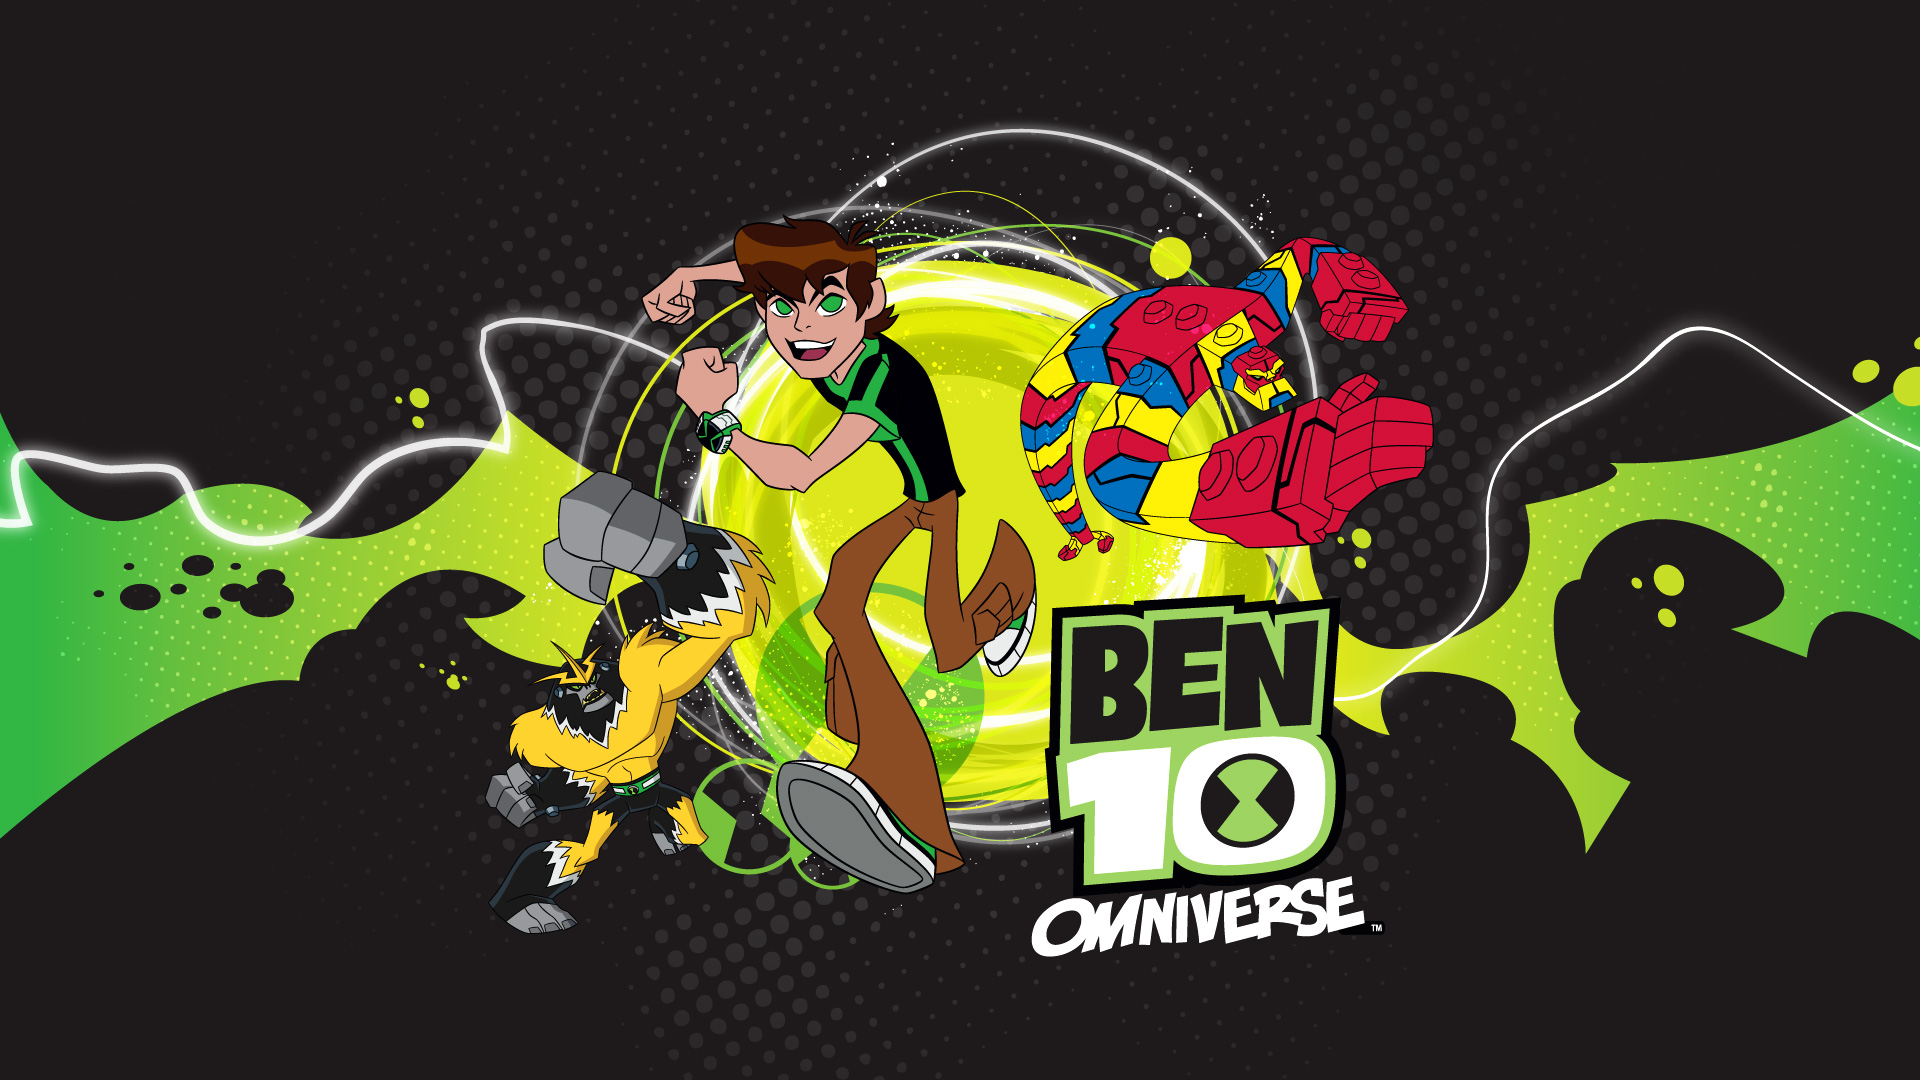 Ben 10 omniverse full hd wallpaper and background image video game ben 10 omniverse wallpaper voltagebd Image collections